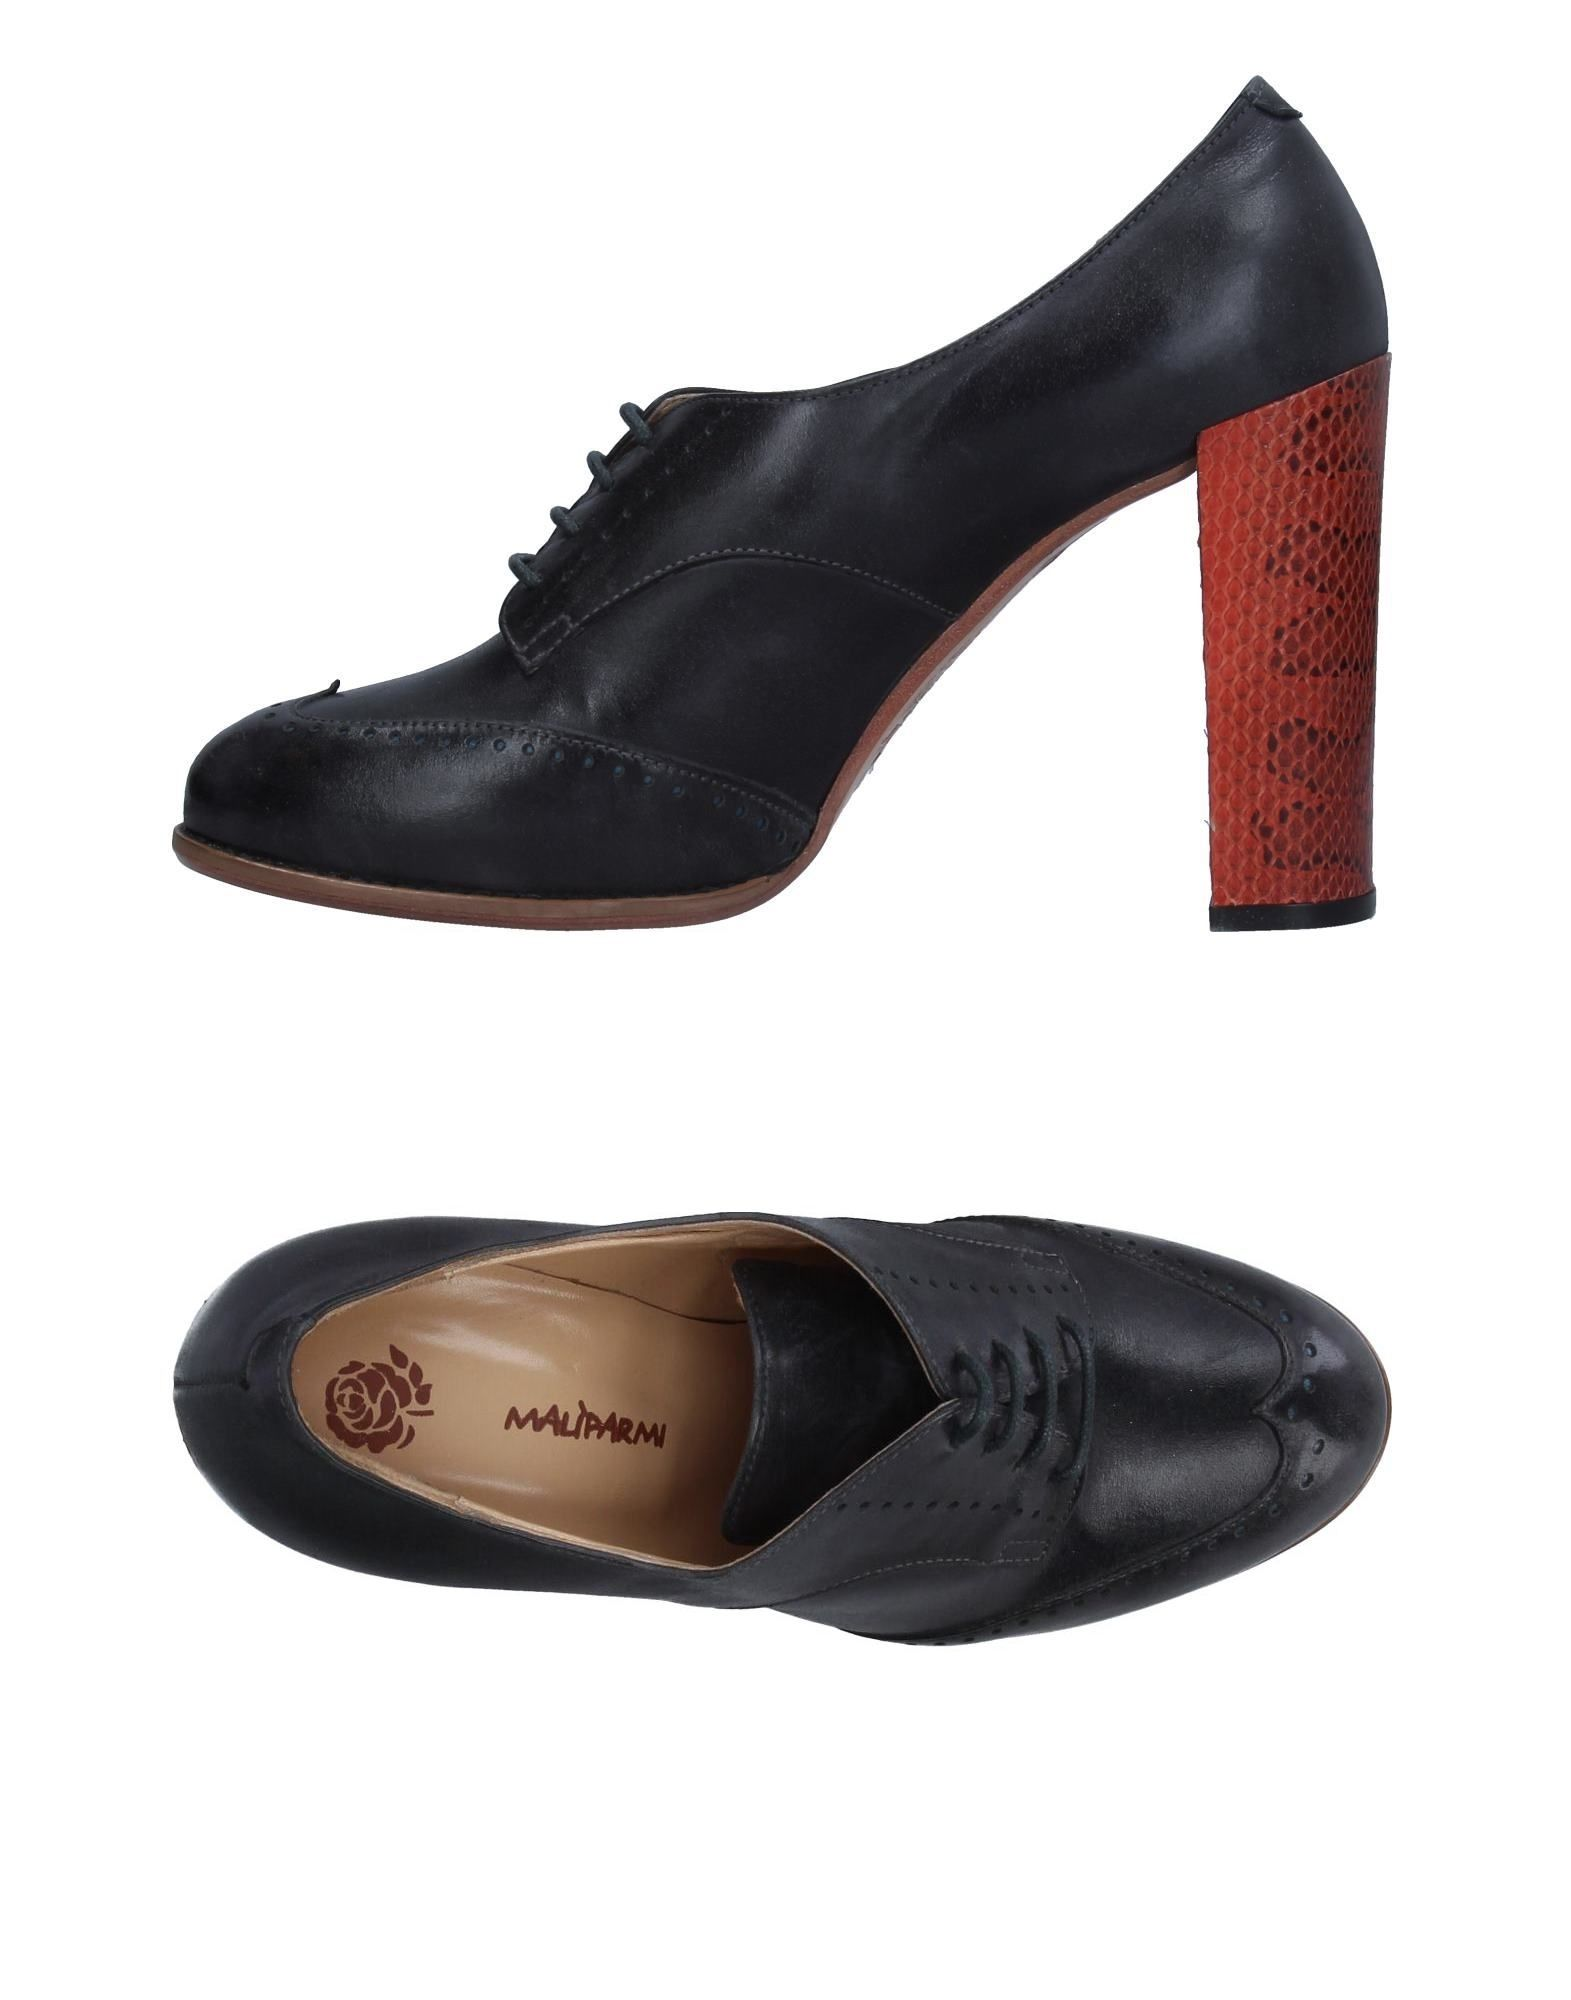 CHAUSSURES - Chaussures à lacetsWize & Ope vzBVeqS1J2